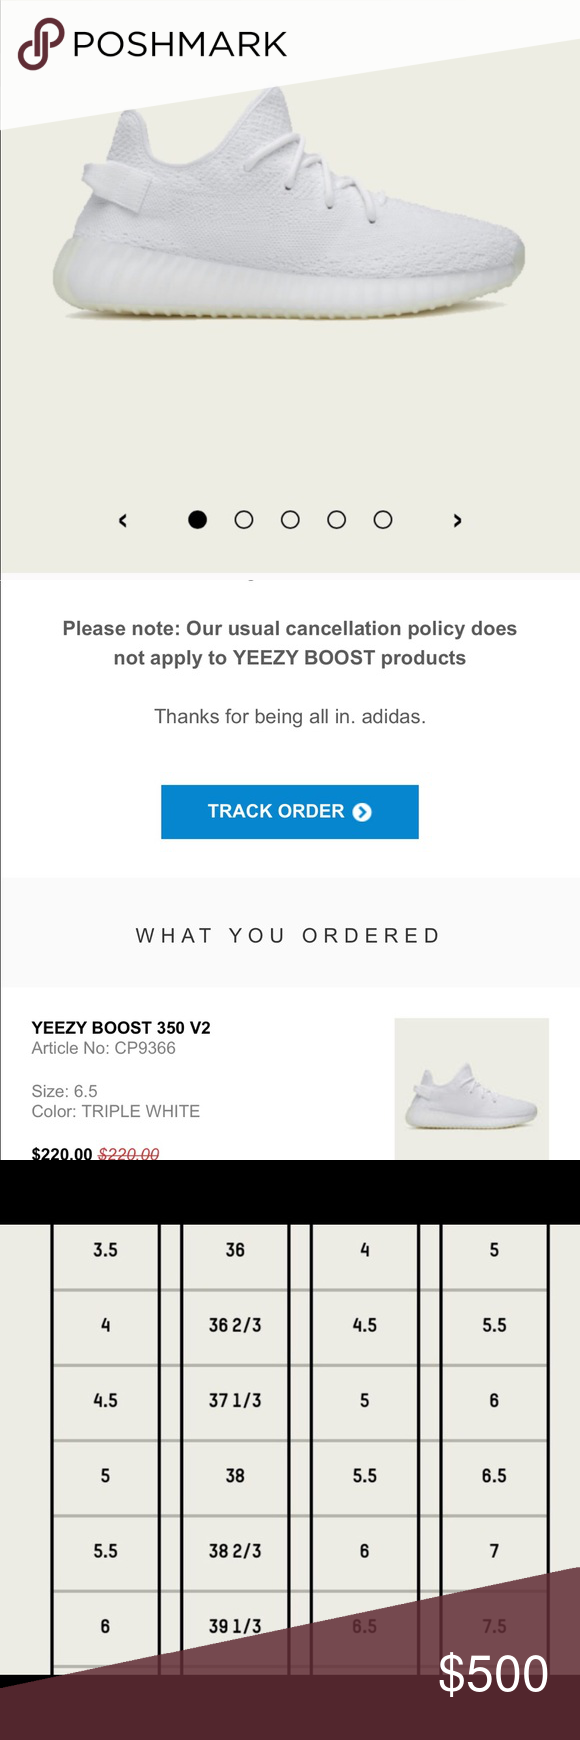 Authentic Yeezy Boost 350 V2 Triple White Size 7 5 Women S 6 In Men Per Sizing Chart Pre Order